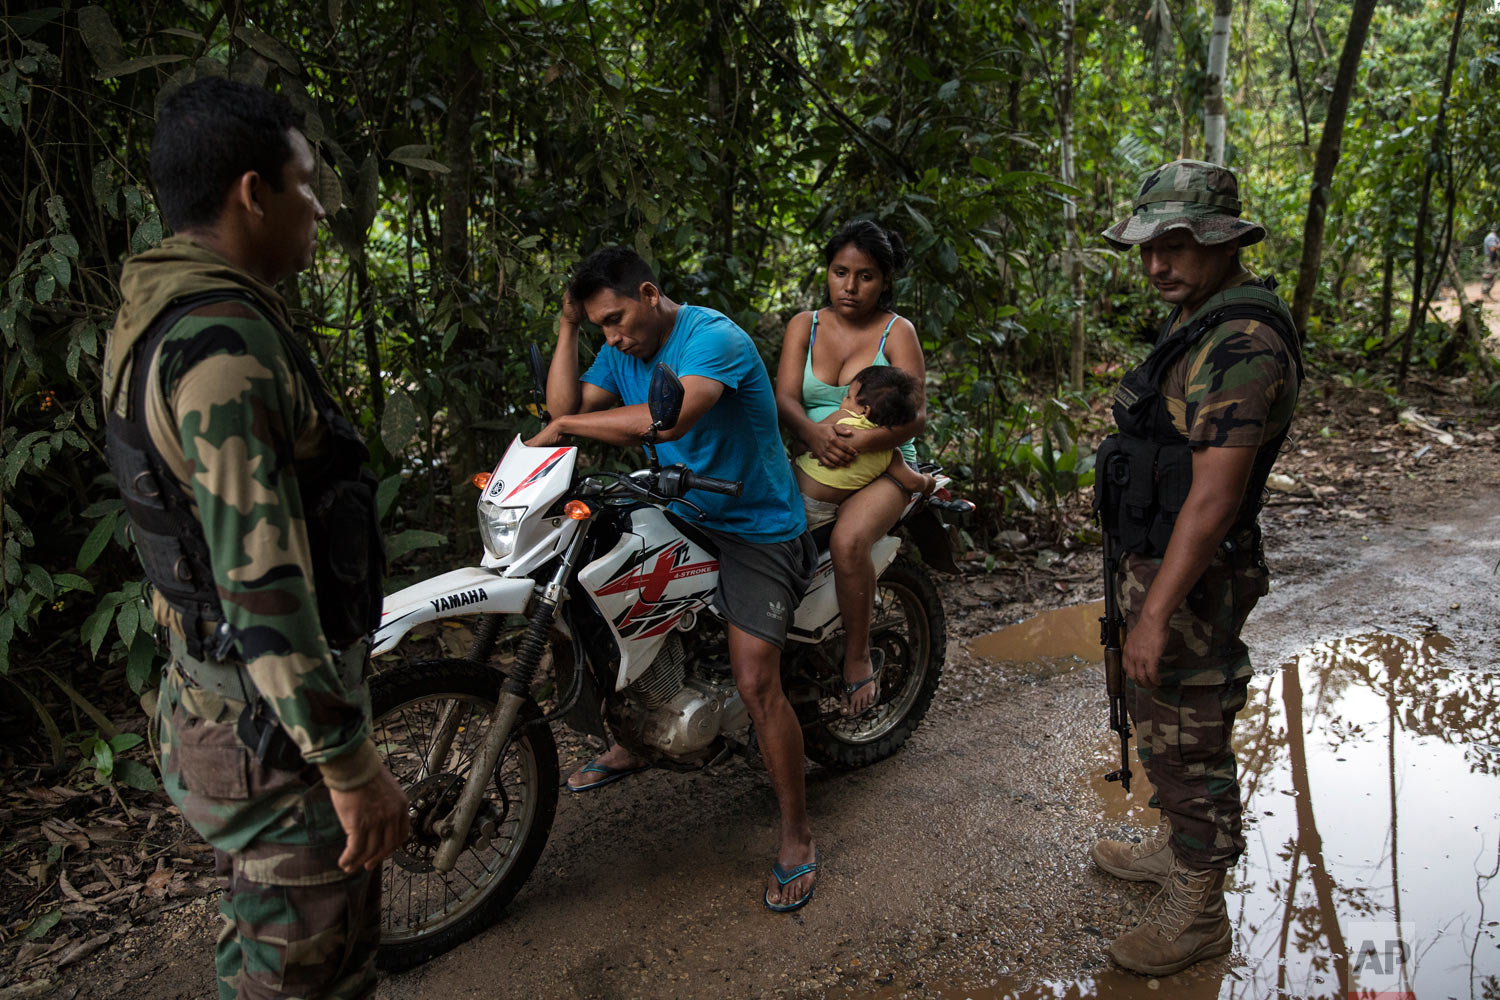 """Operation Mercury"" policemen question a wildcat miner near the Mega 12 police base in Peru's Tambopata province, April 3, 2019. The operation began in February when authorities evicted thousands of illegal gold miners from the area and deployed hundreds of police and soldiers for longer terms. (AP Photo/Rodrigo Abd)"